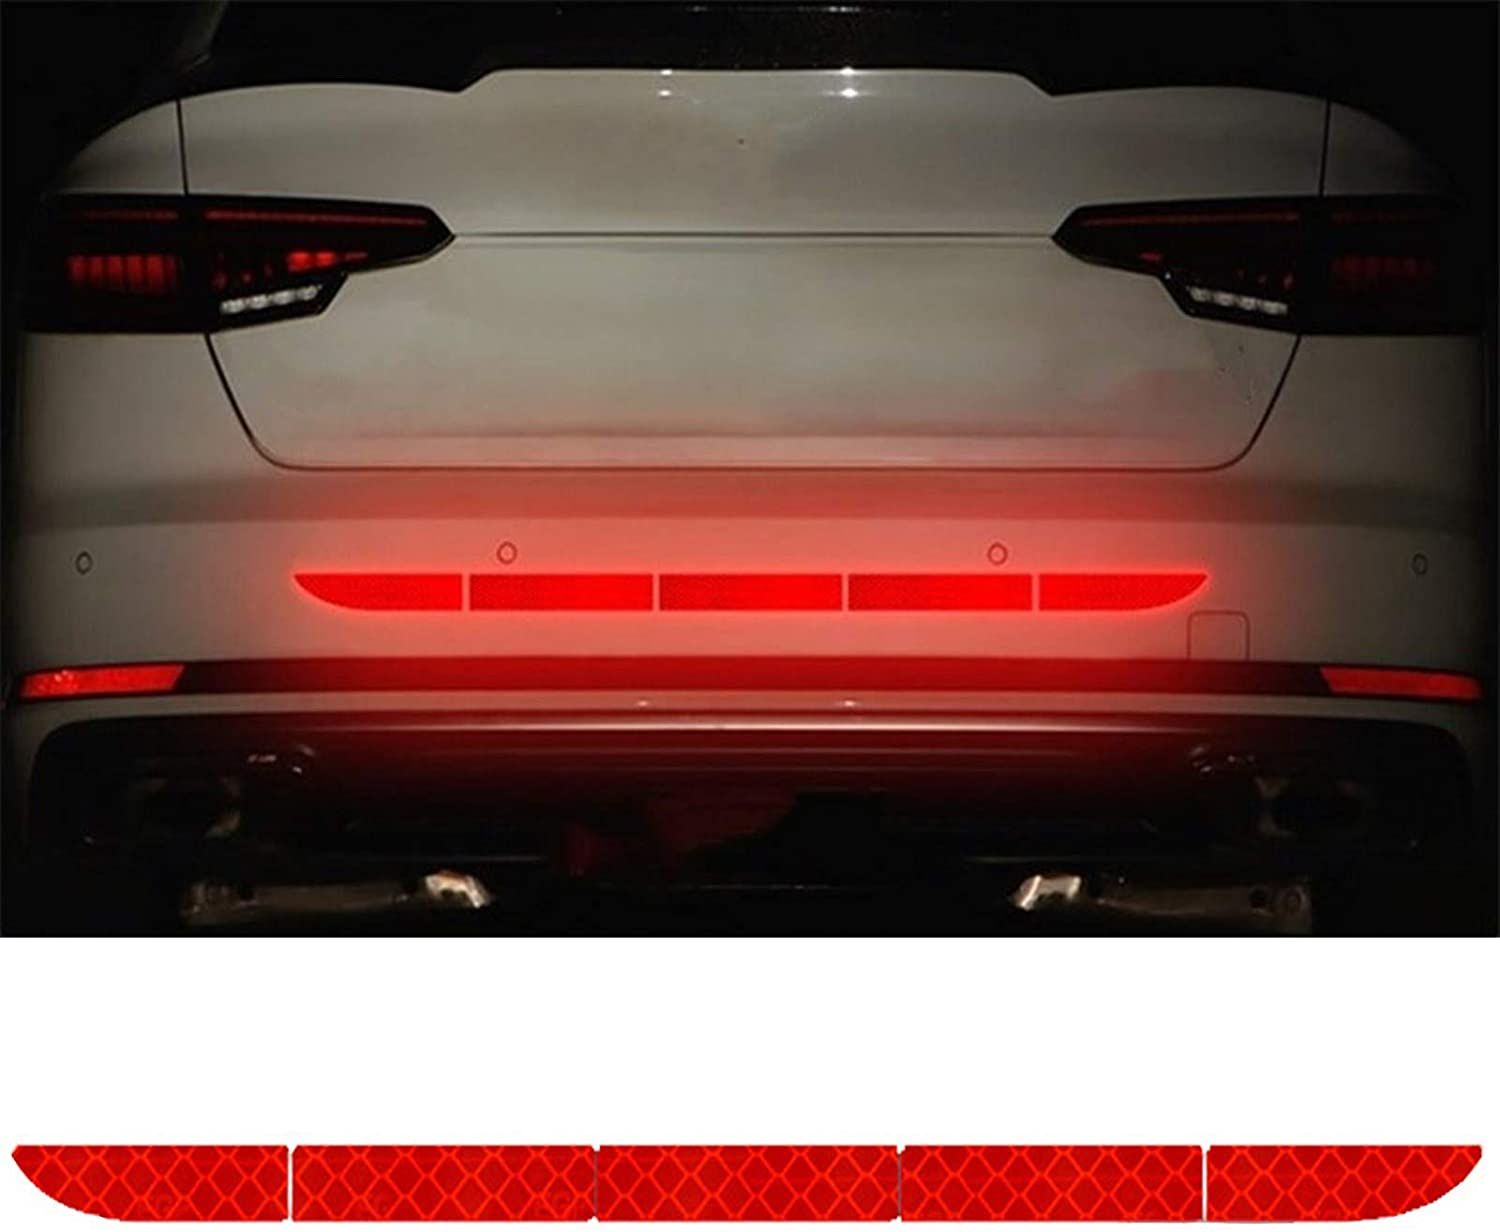 LANZMYAN Reflective Rear Bumper Guard Anti-Scratch Rear Trunk Rear Warning Cover Sticker for Cars SUVs Pickup Trucks Red